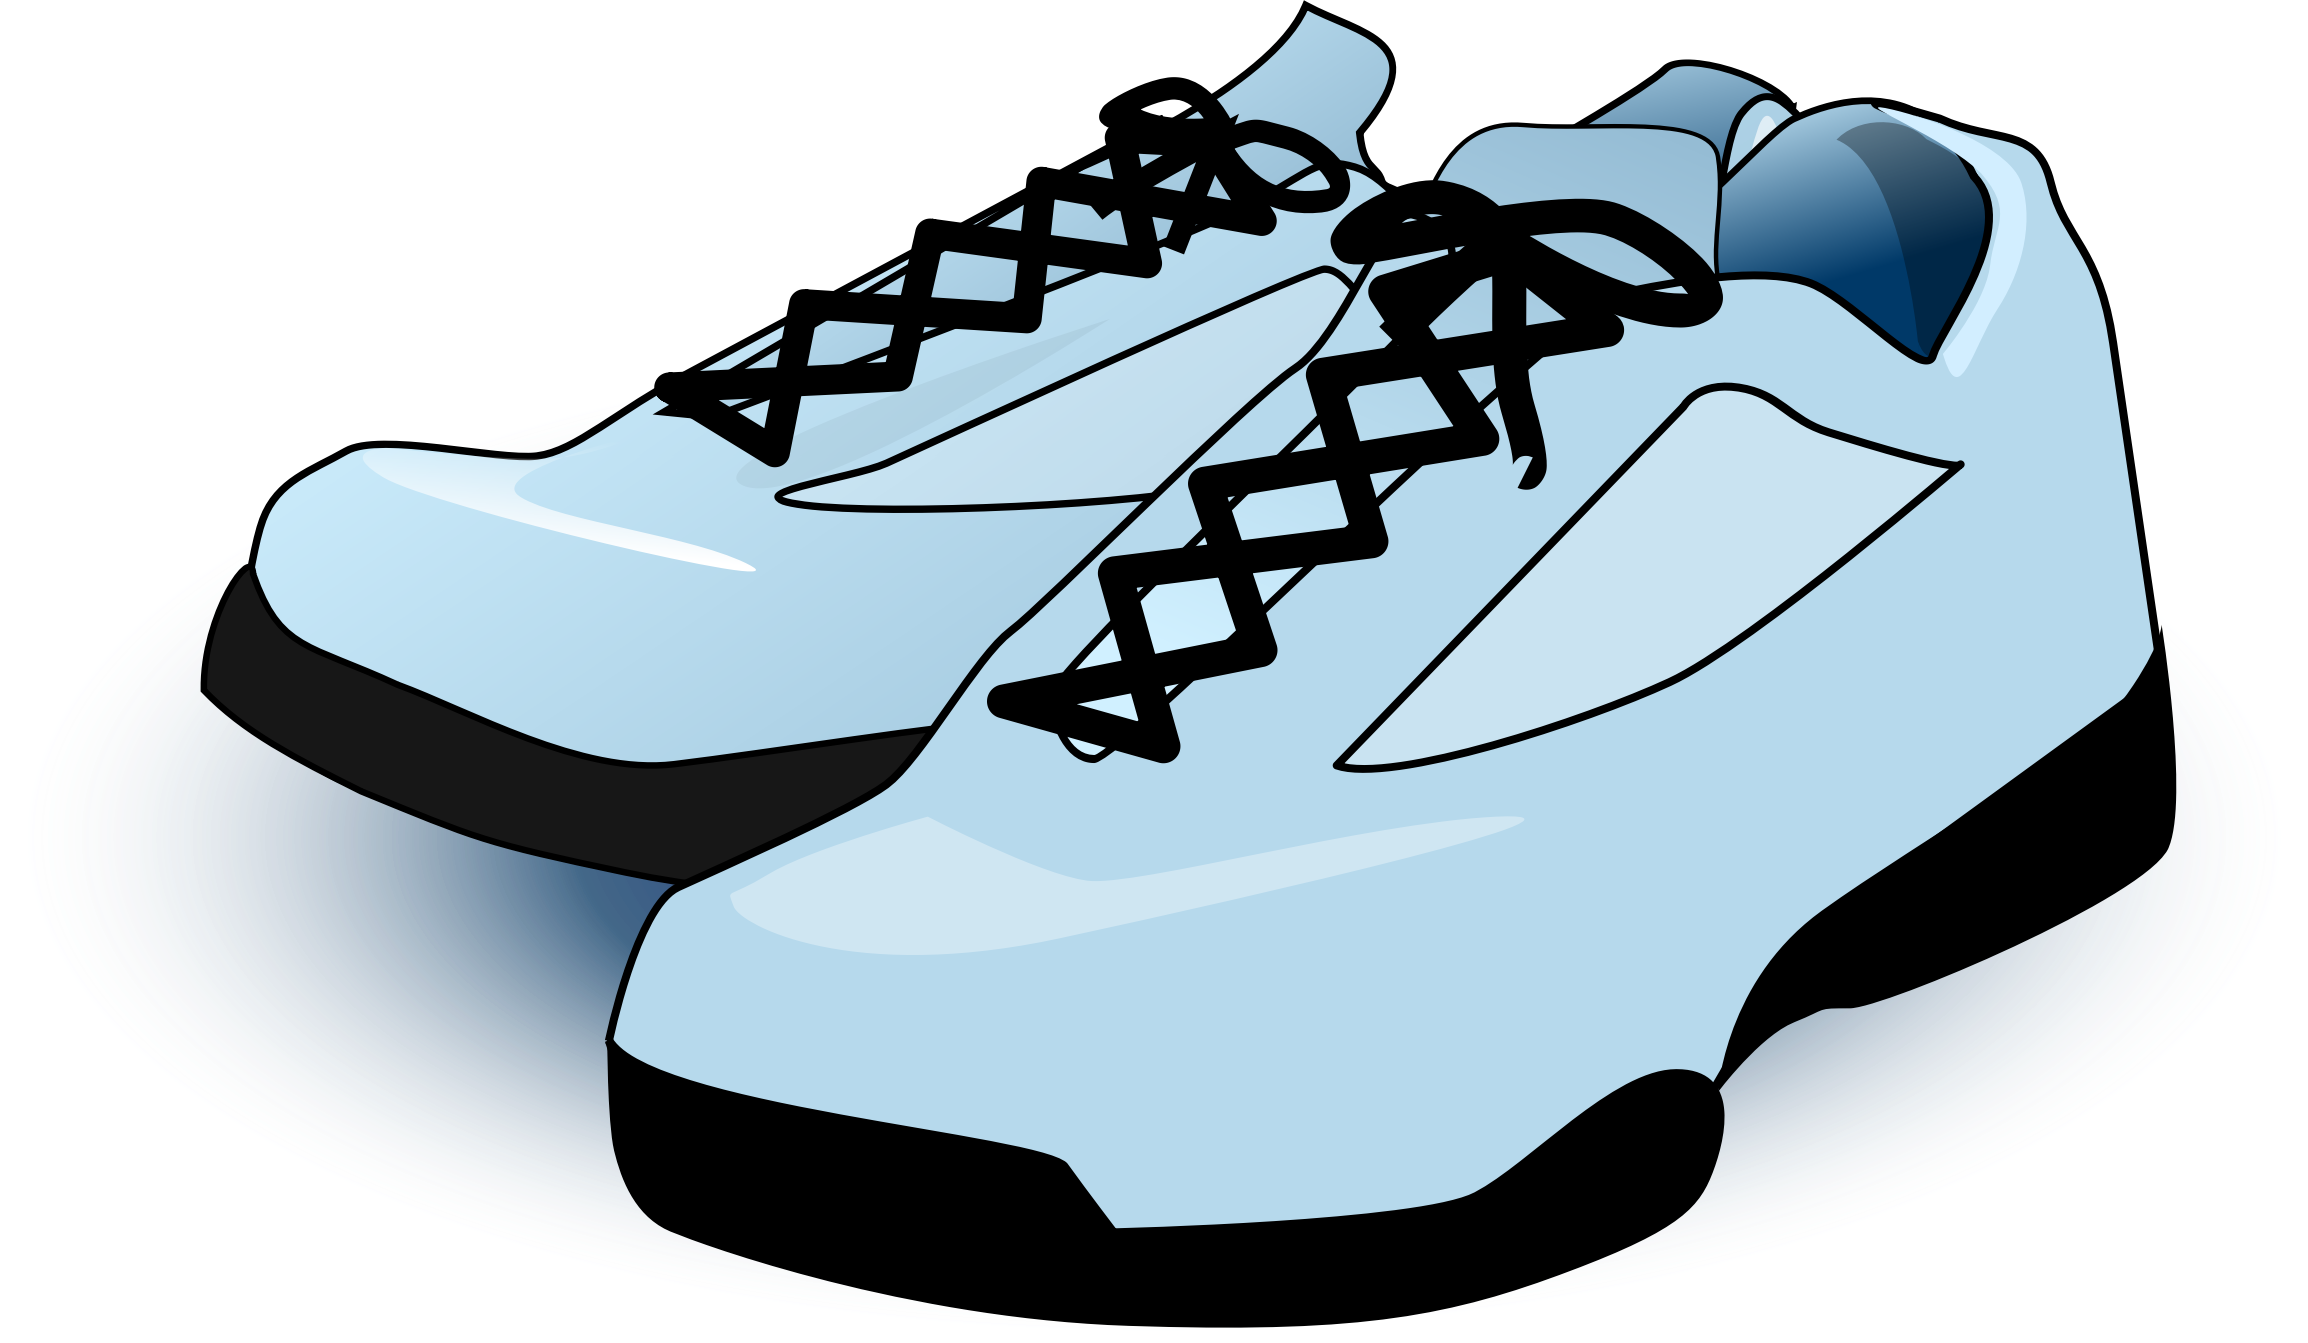 image royalty free Sneakers clipart big shoe